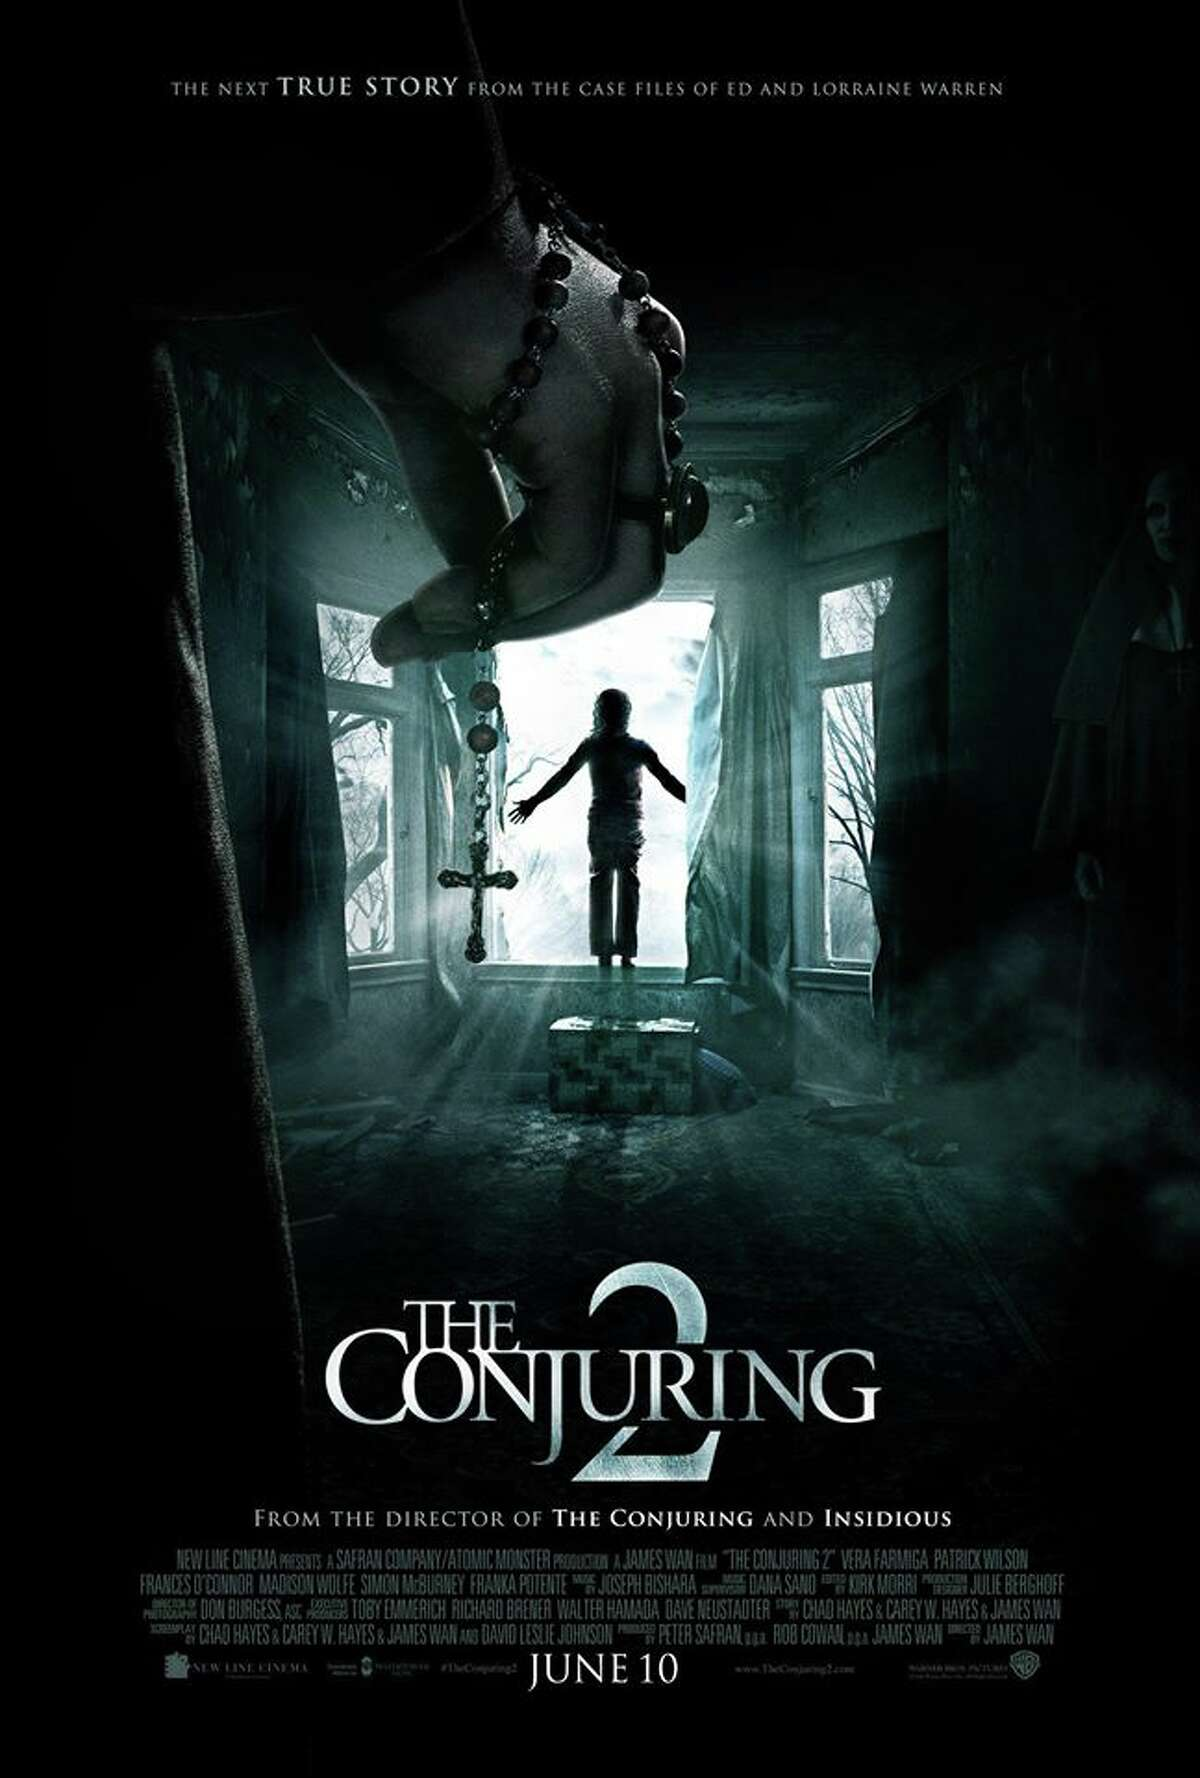 The Conjuring 2 coming June 10. Lorraine and Ed Warren travel to north London to help a single mother raising four children alone in a house plagued by malicious spirits. Starring Vera Farmiga, Patrick Wilson, Franka Potente, Maria Doyle Kennedy.